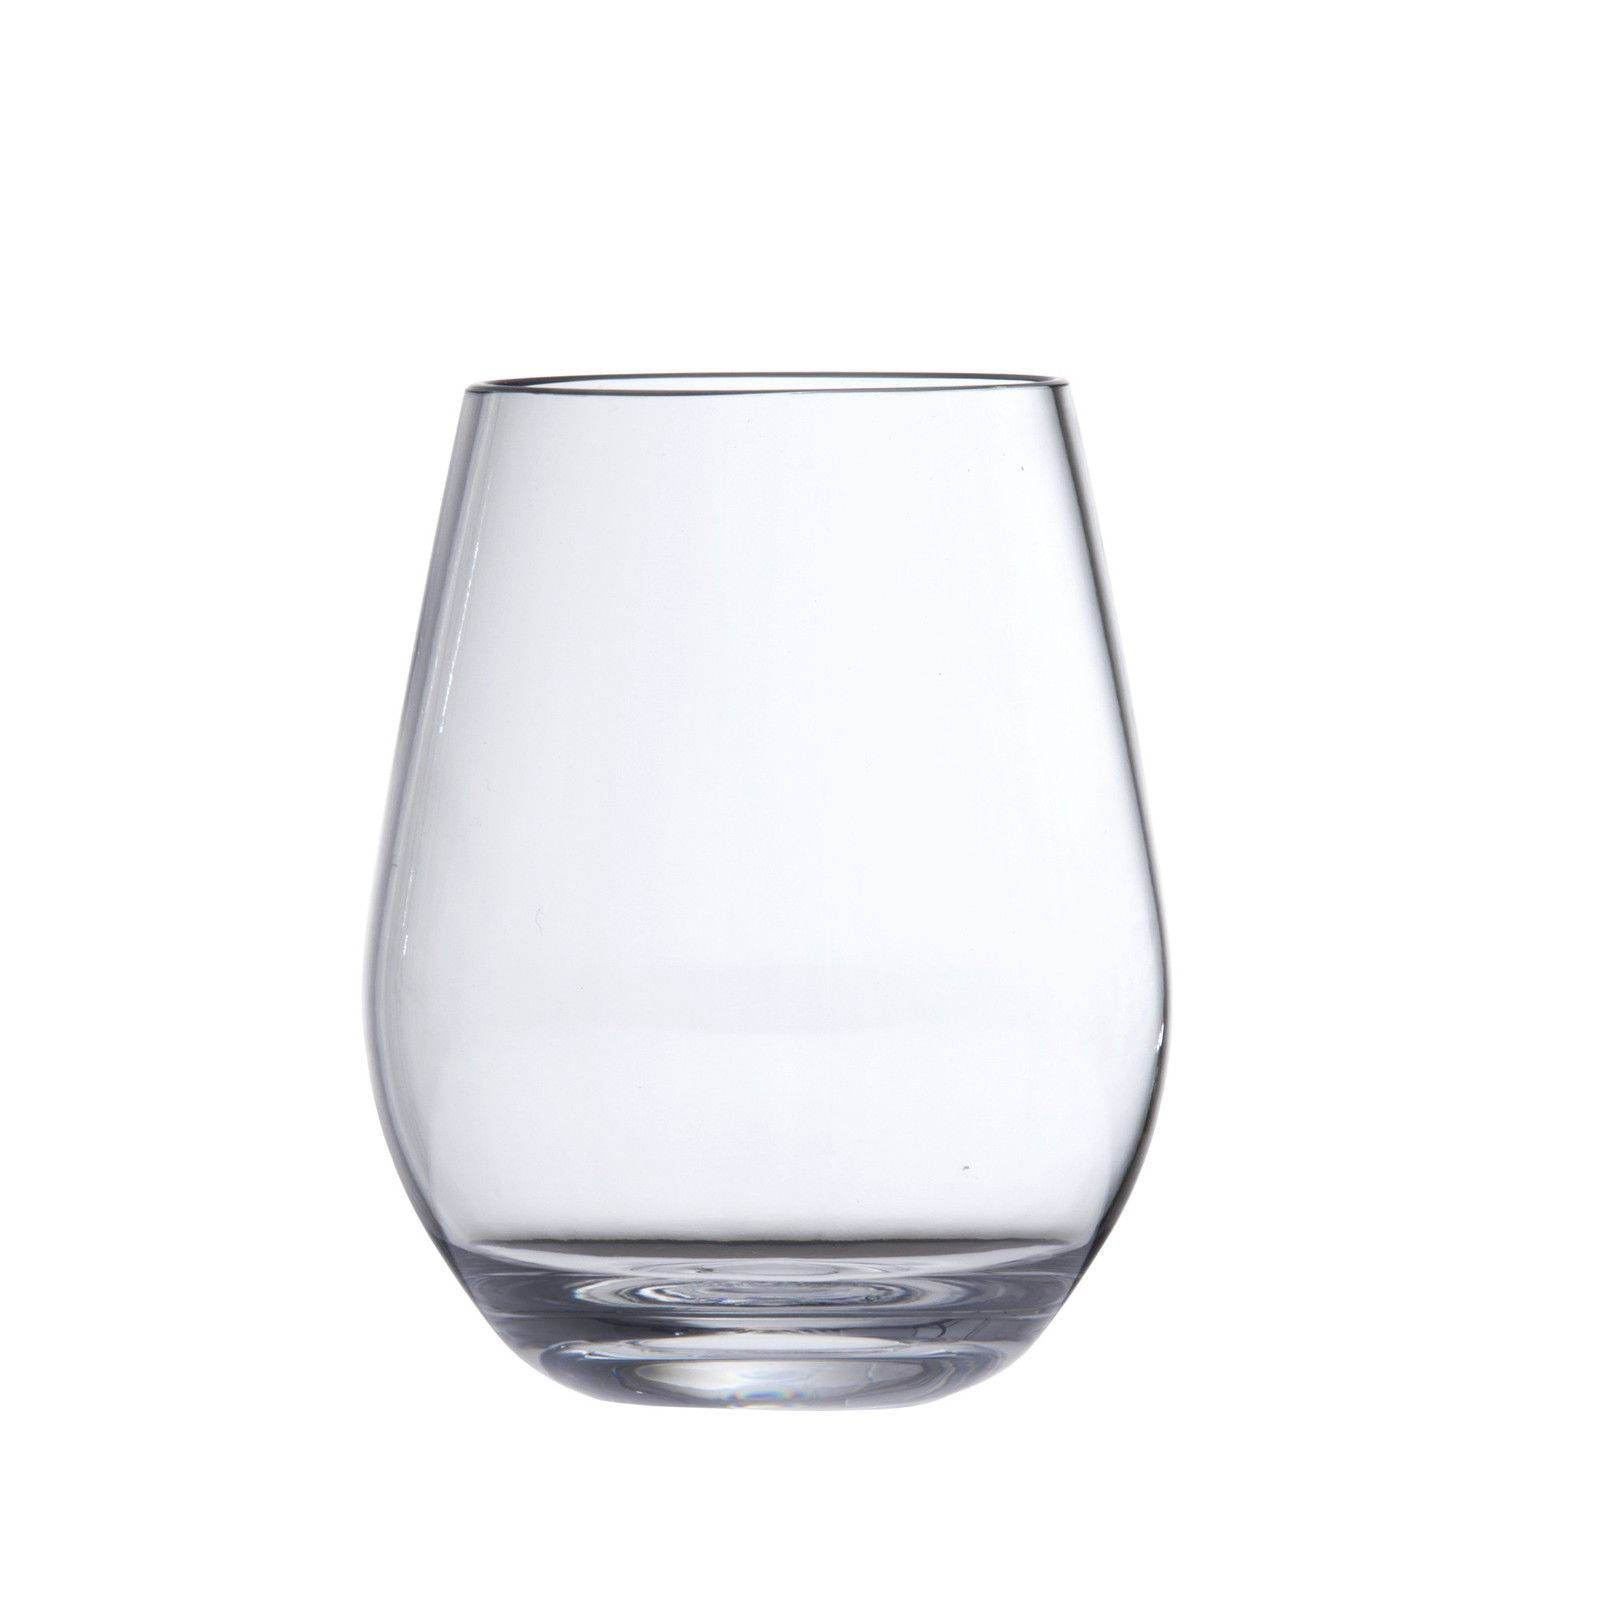 cool D&V Stemless Pink Wine Glass Set of 6 Check more at https://aeoffers.com/product/wine/dv-stemless-pink-wine-glass-set-of-6/